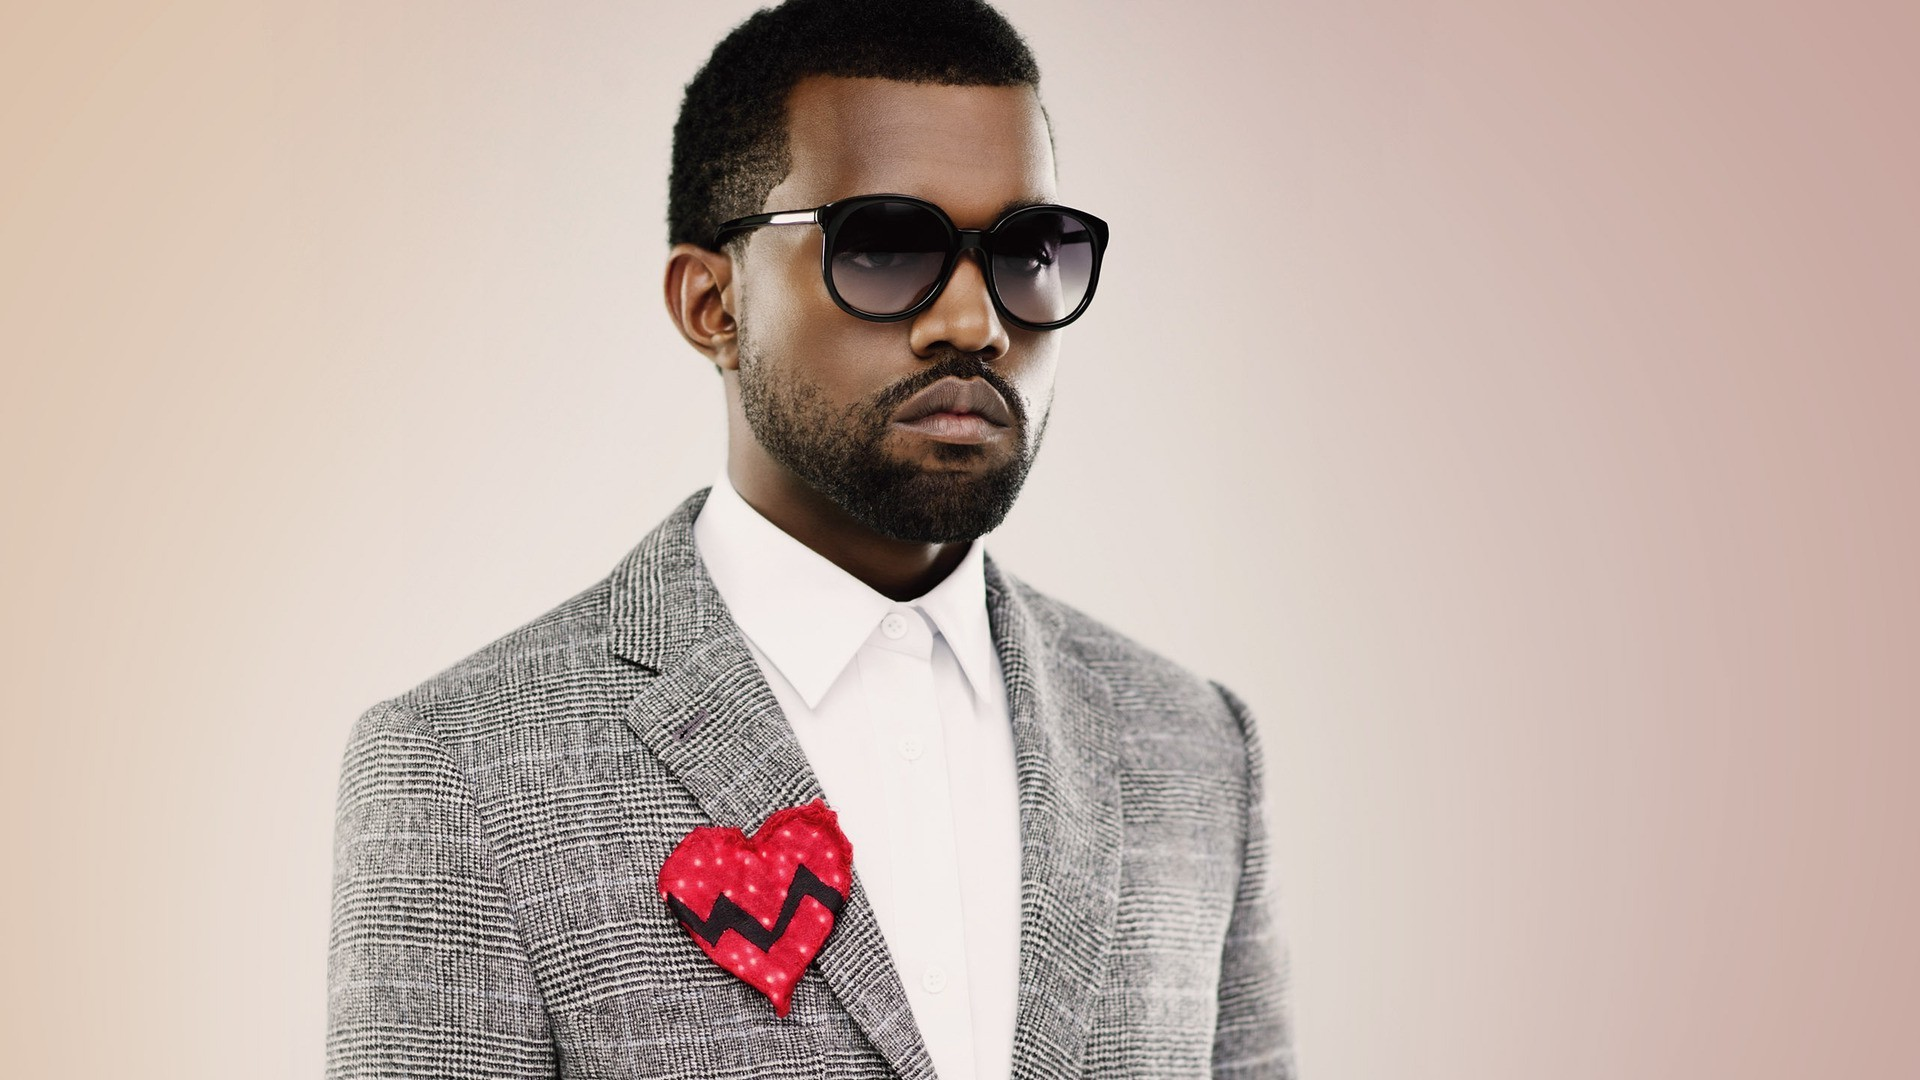 Another Rapper Approached Kanye West